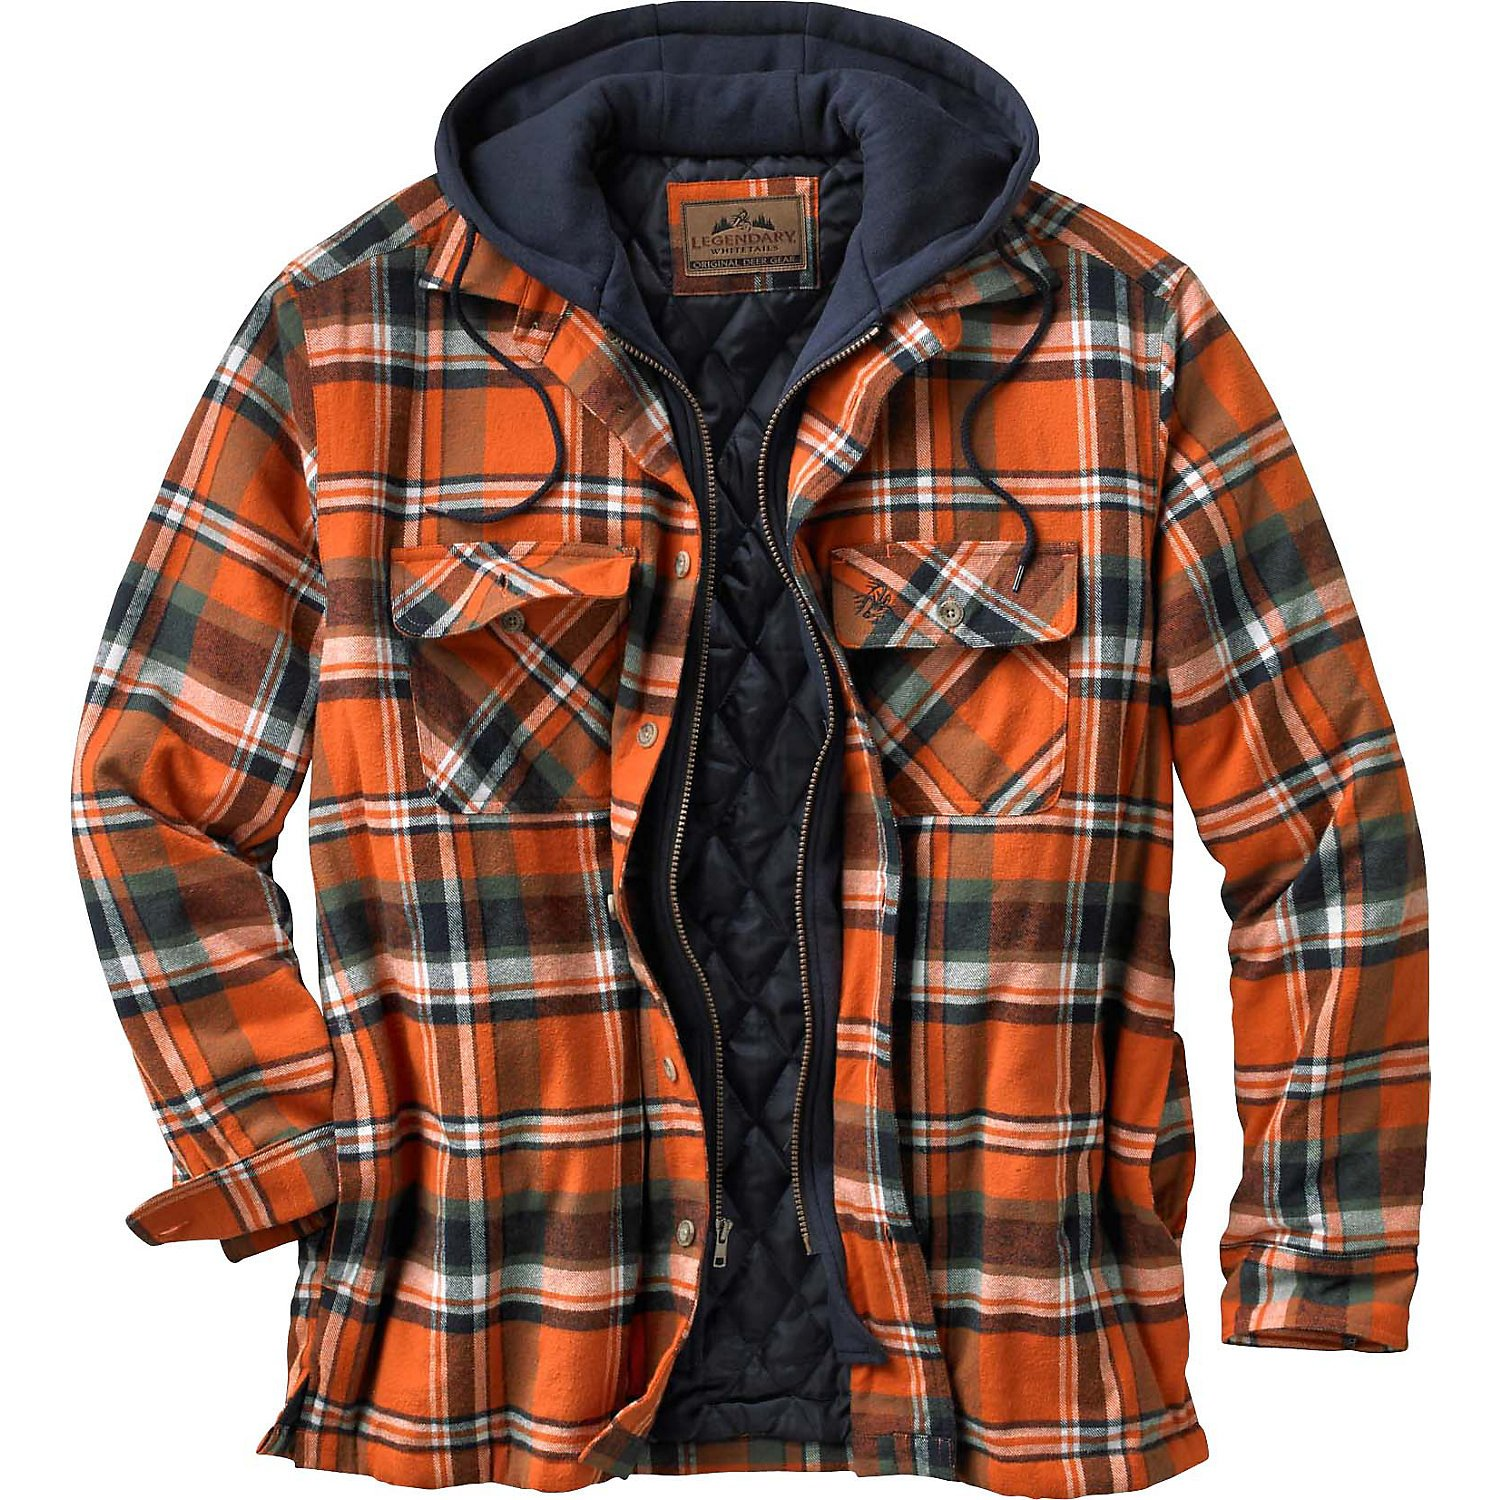 Legendary Whitetails Maplewood Hooded Shirt Jacket, Tomahawk Plaid, Small by Legendary Whitetails